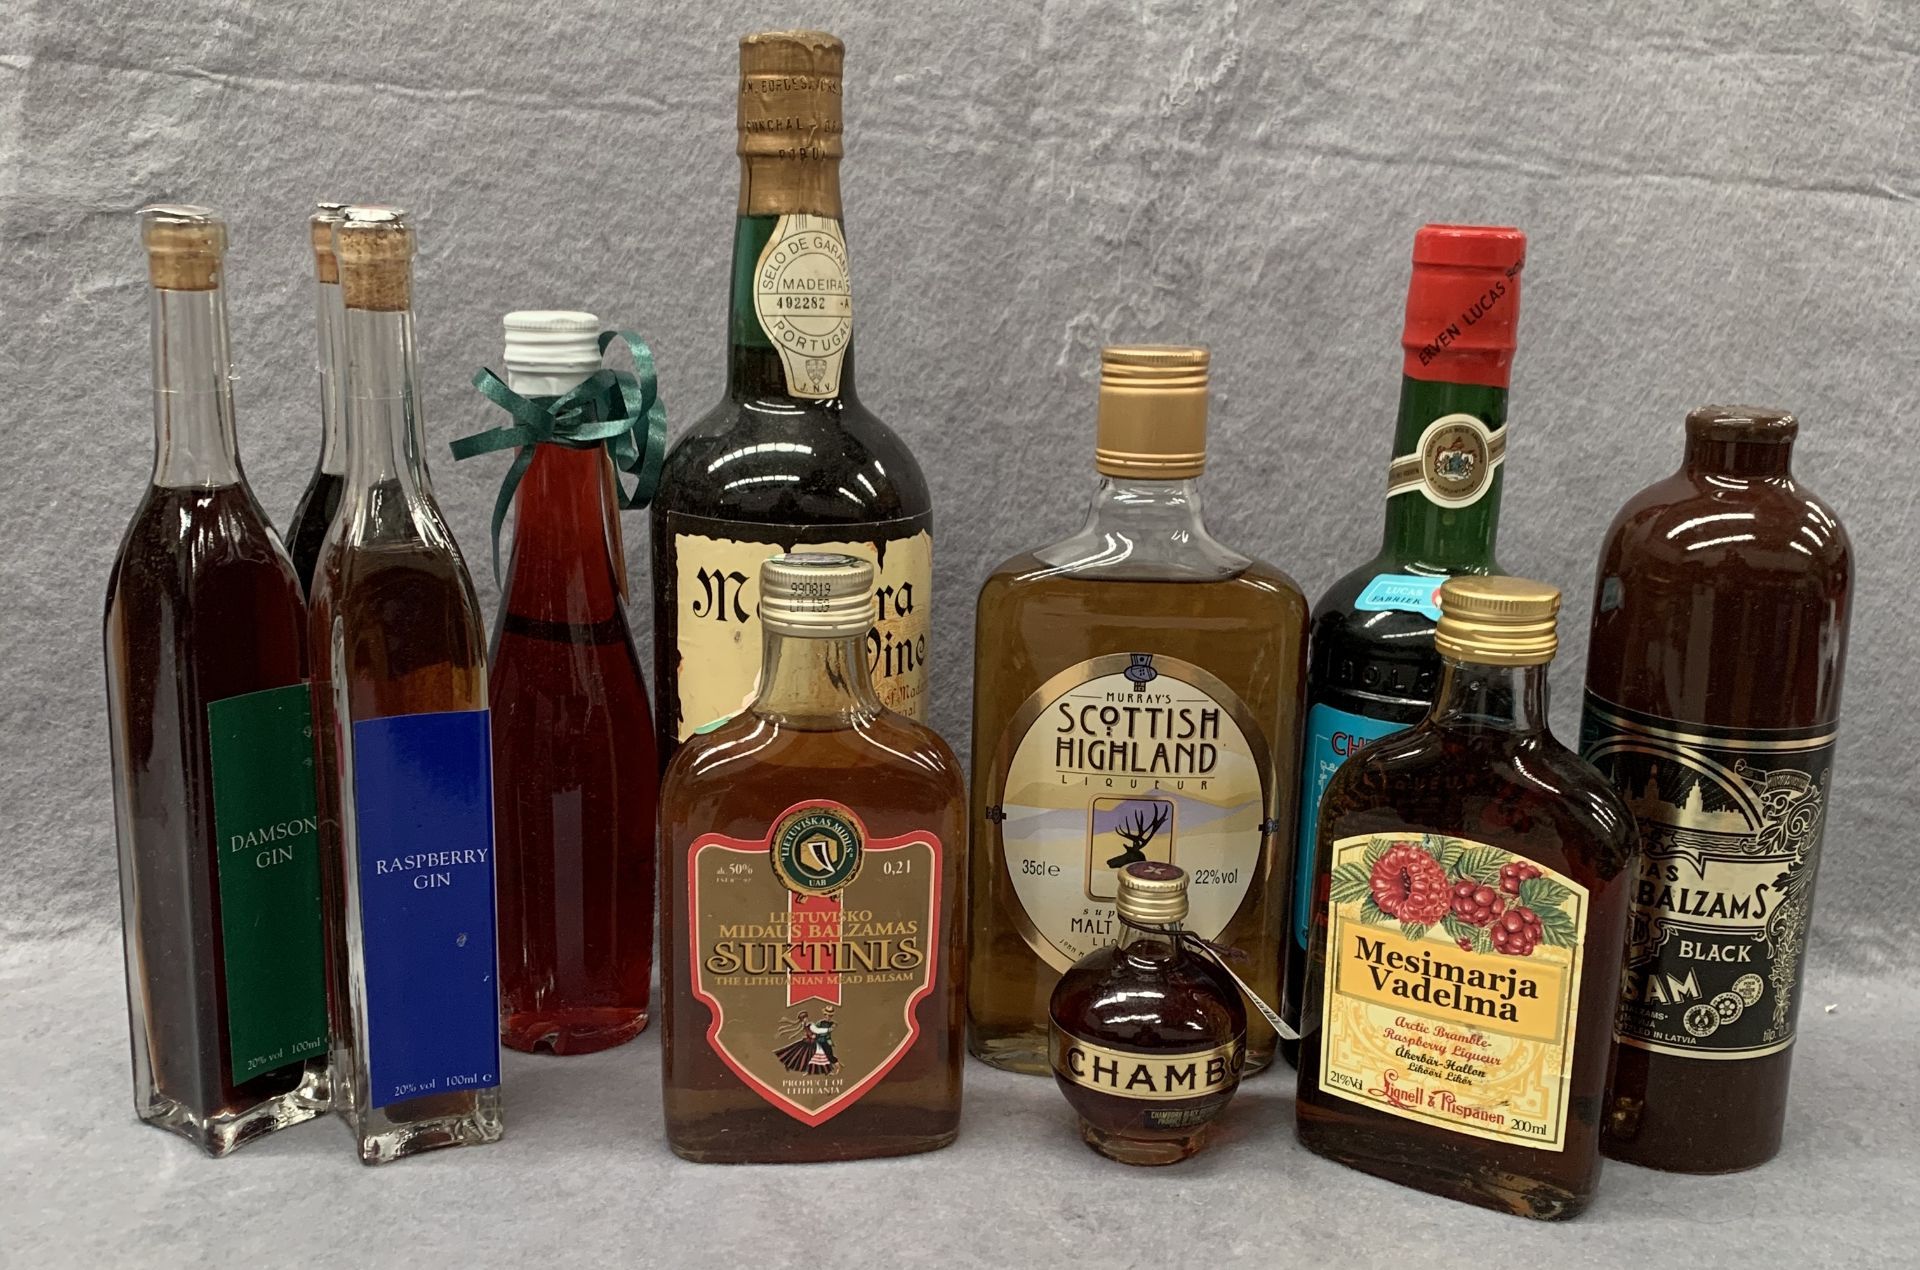 Lot 6 - 11 various sized bottles to include flavoured gins (100ml), bottle of Madeira wine,